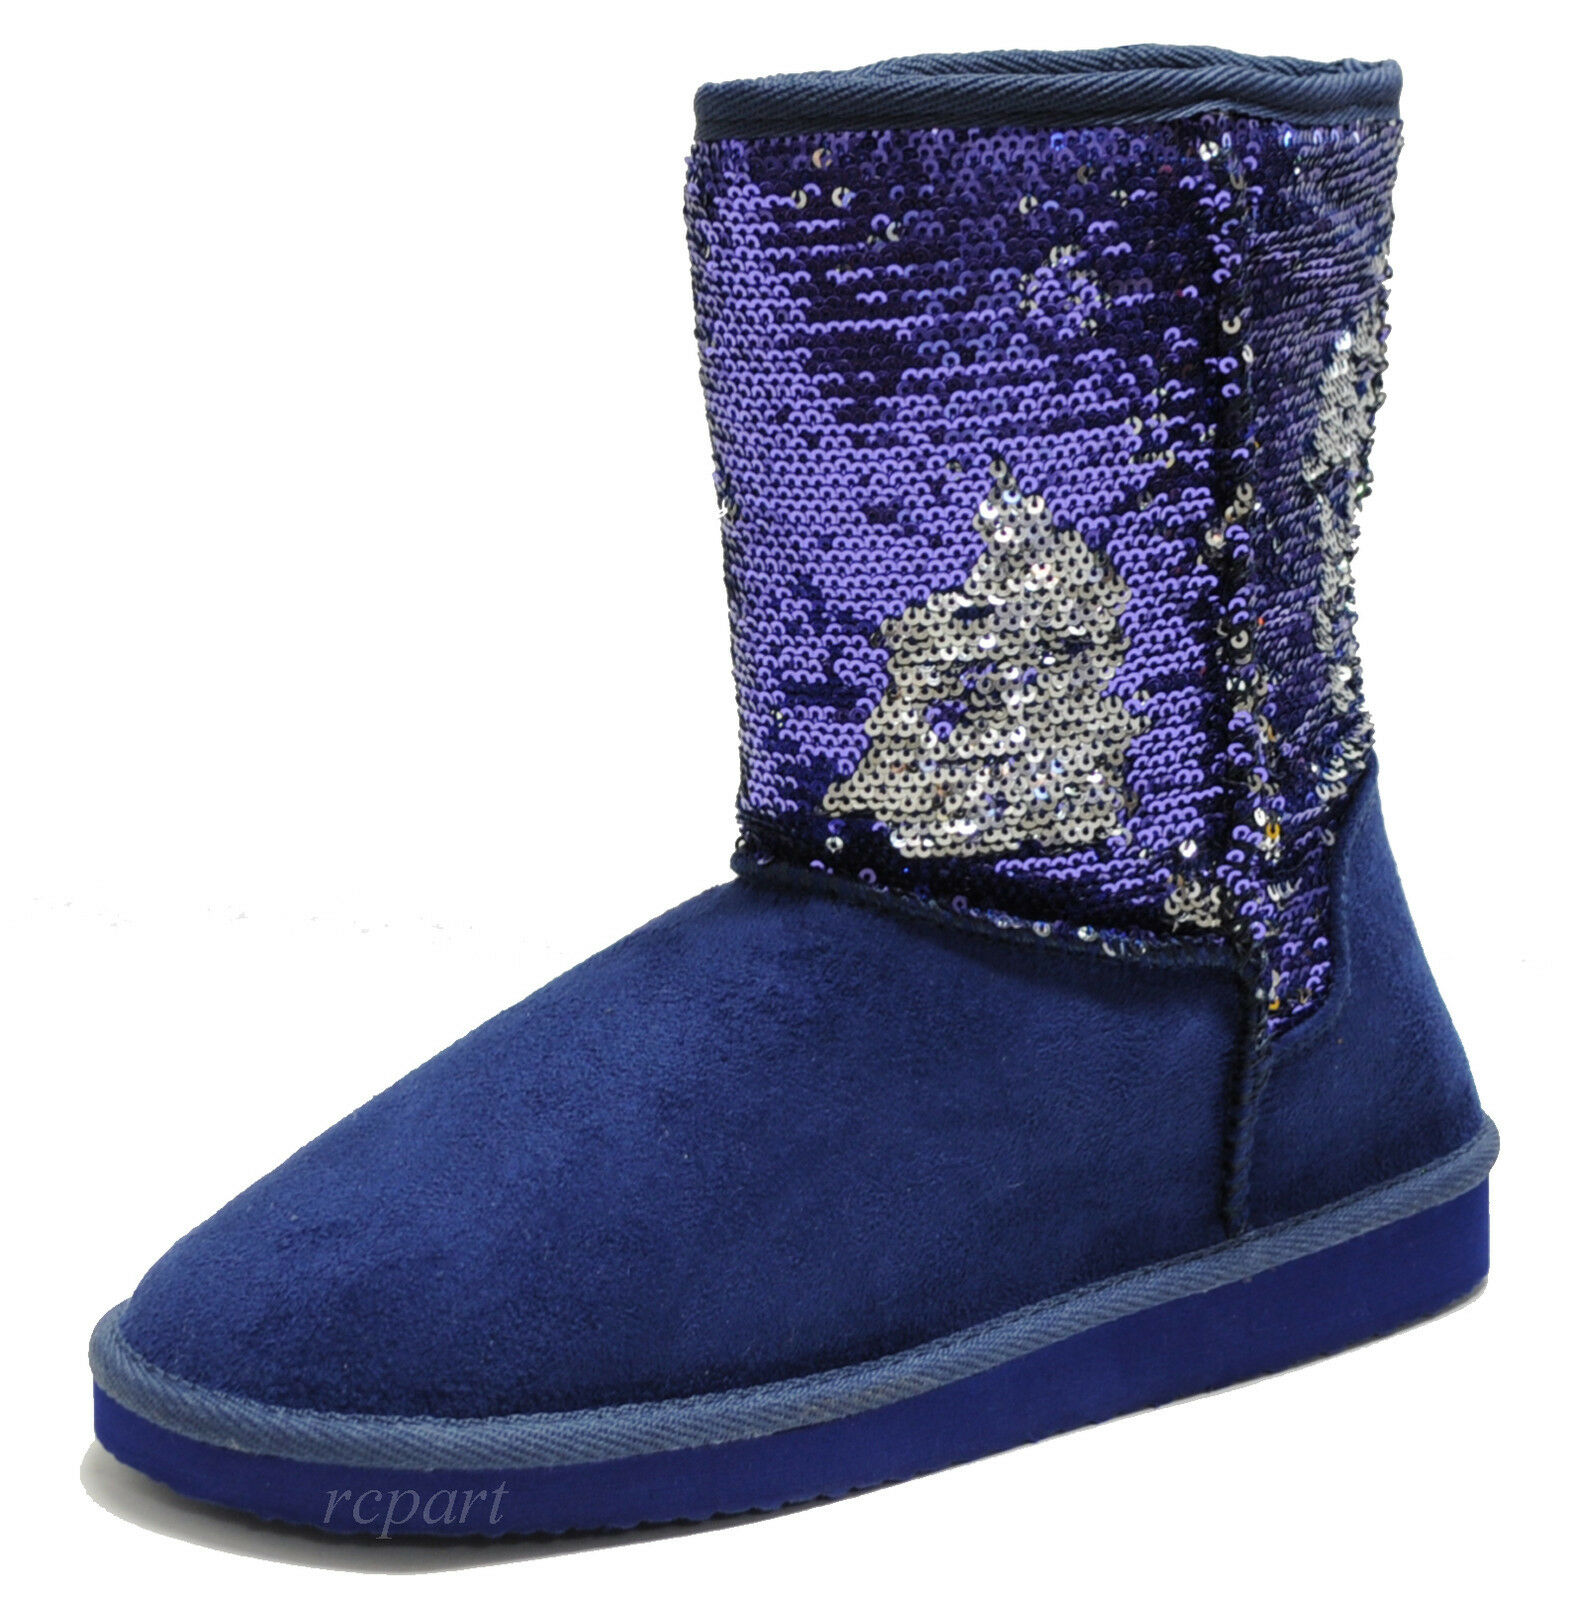 New women's shoes short shaft boot faux fur lining winter sequins royal blue